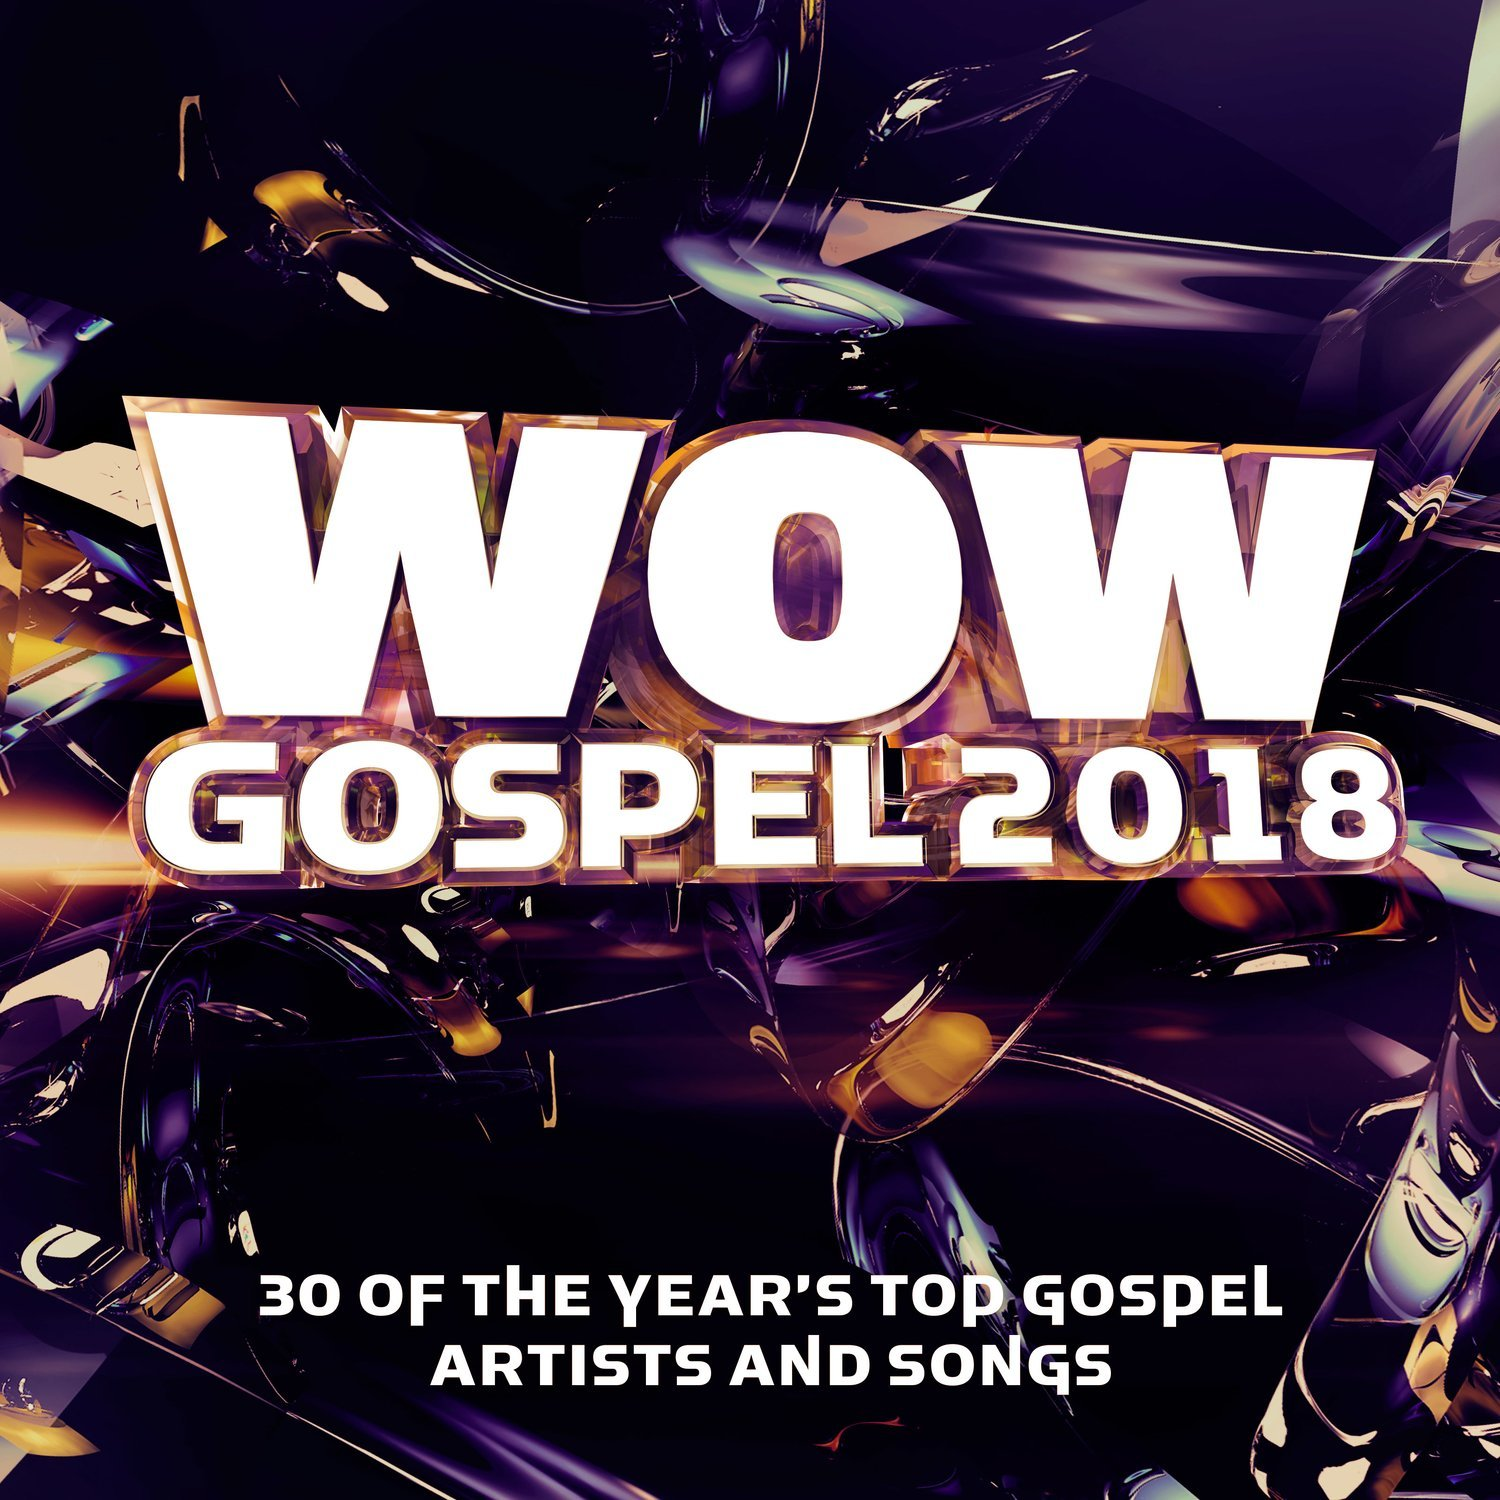 Quot Wow Gospel 2018 Quot 30 Of The Year S Top Gospel Artists